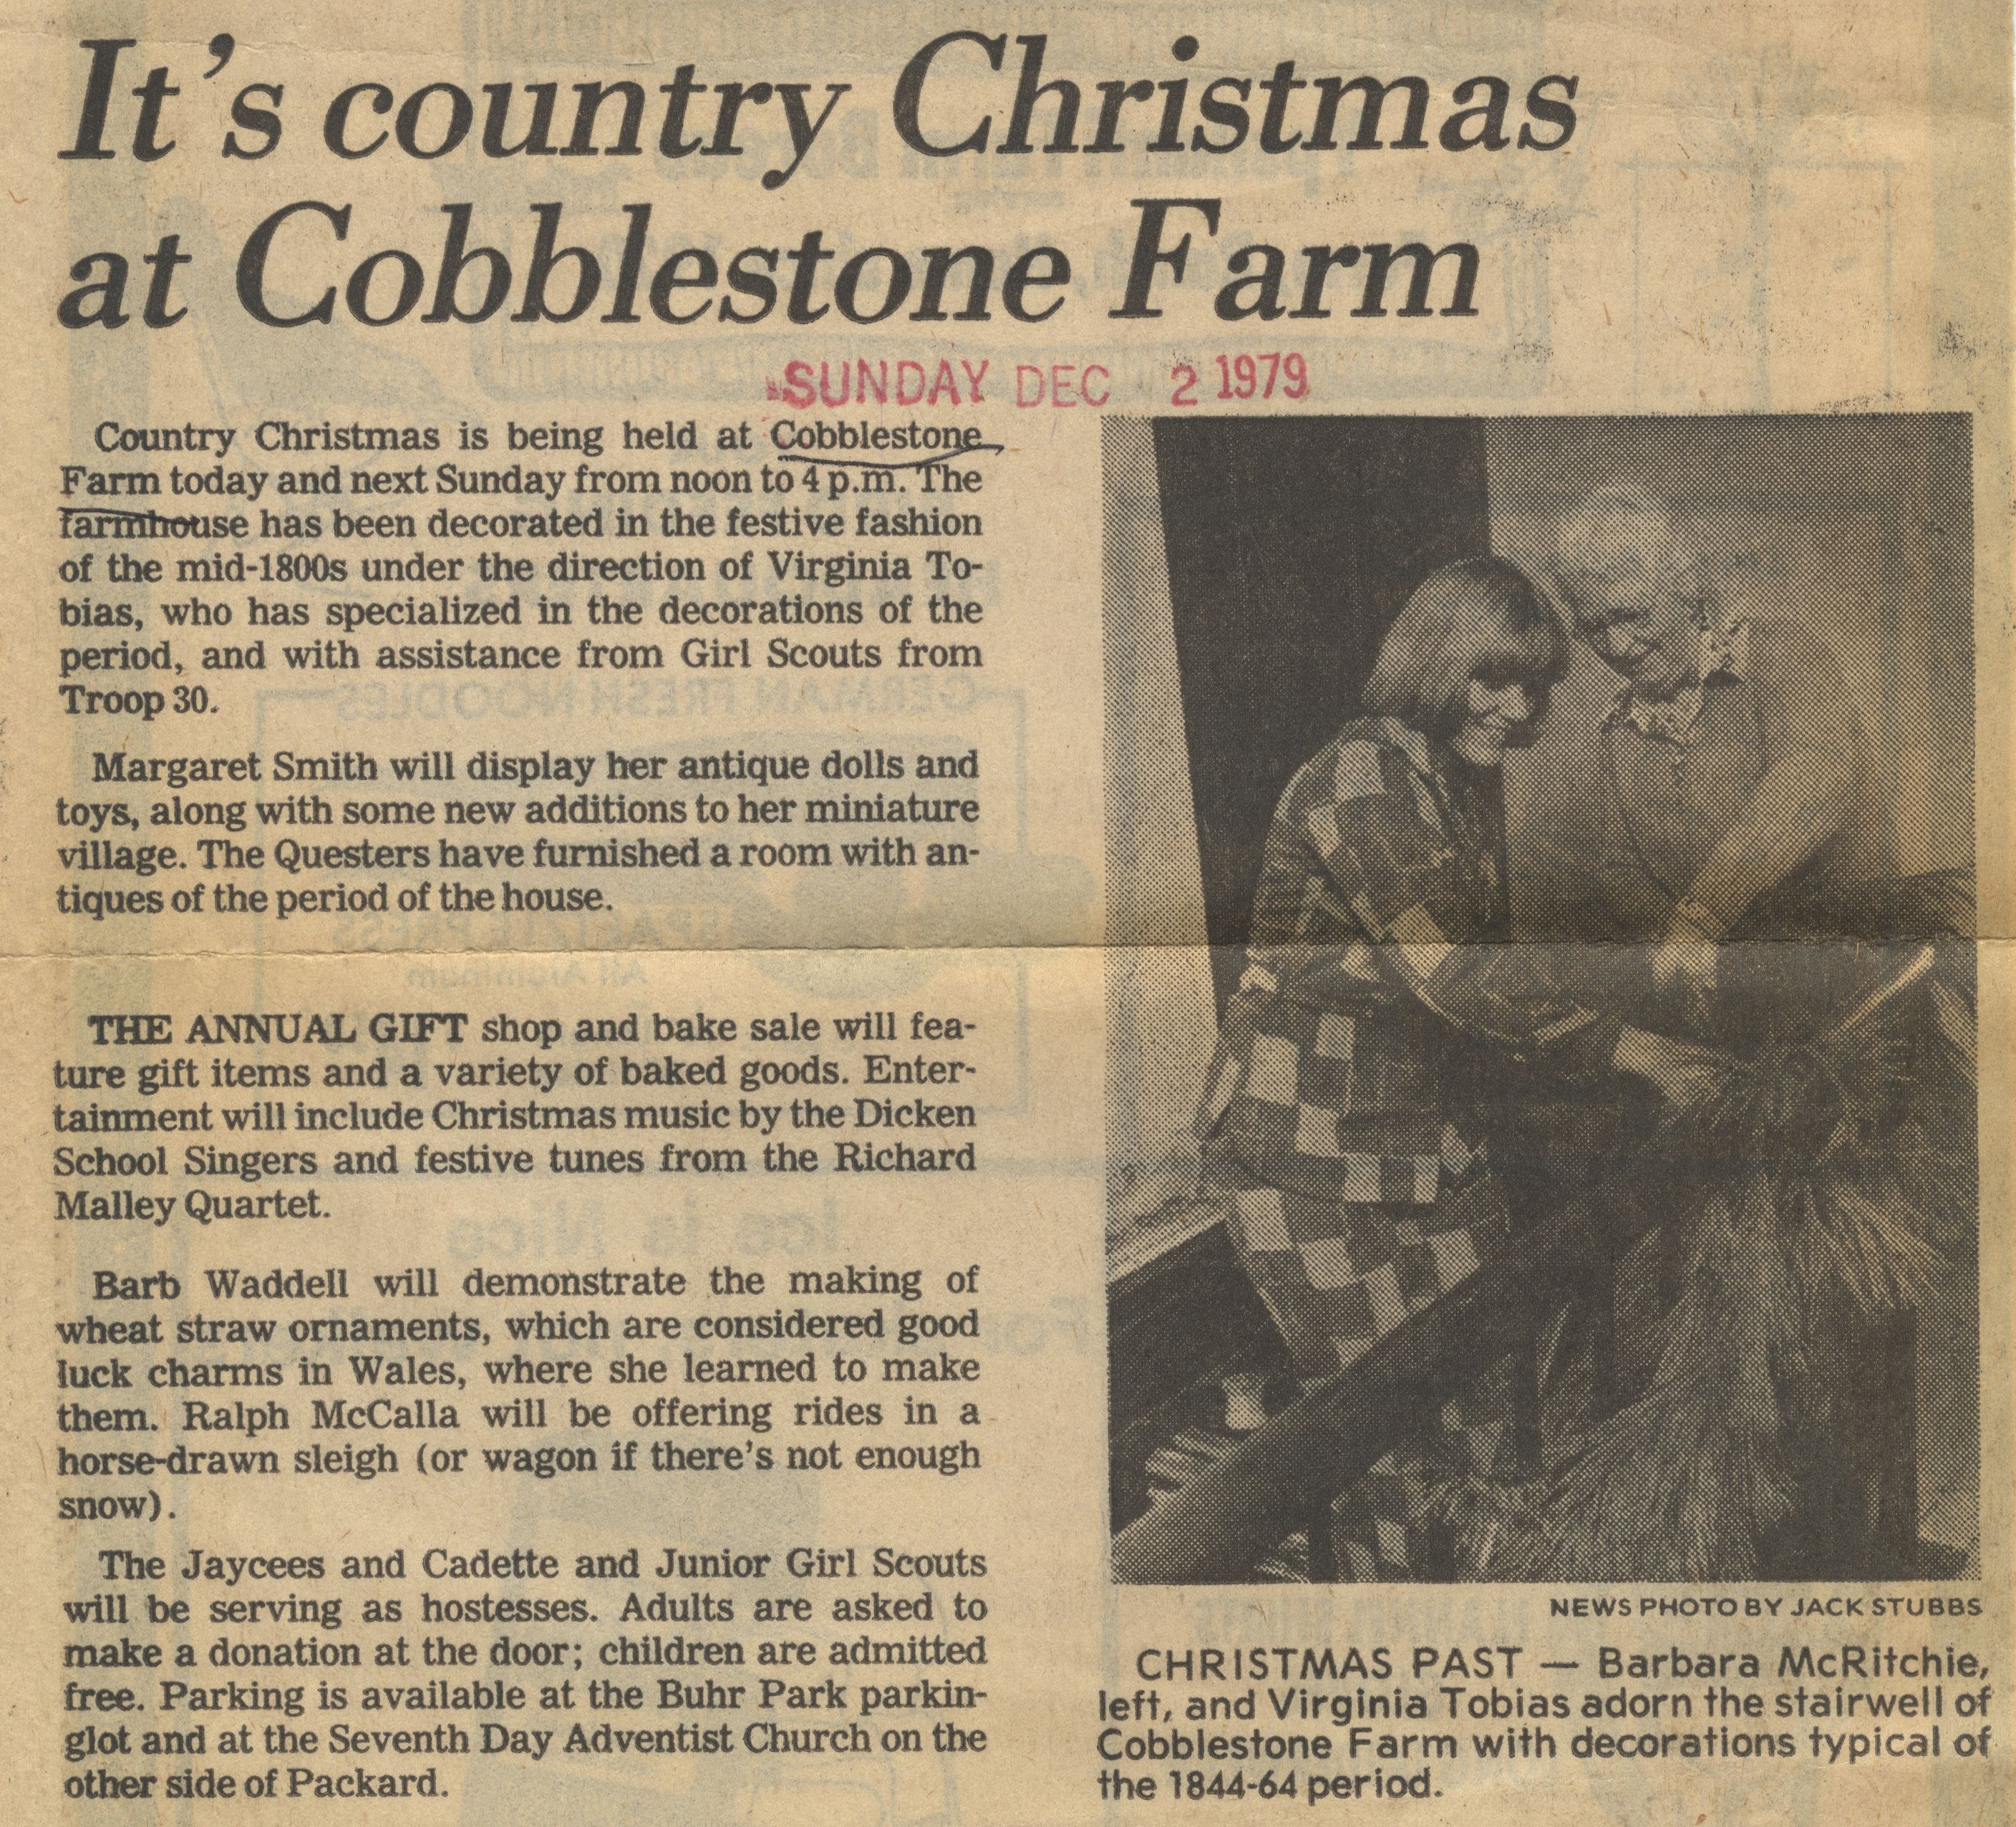 It's Country Christmas At Cobblestone Farm image